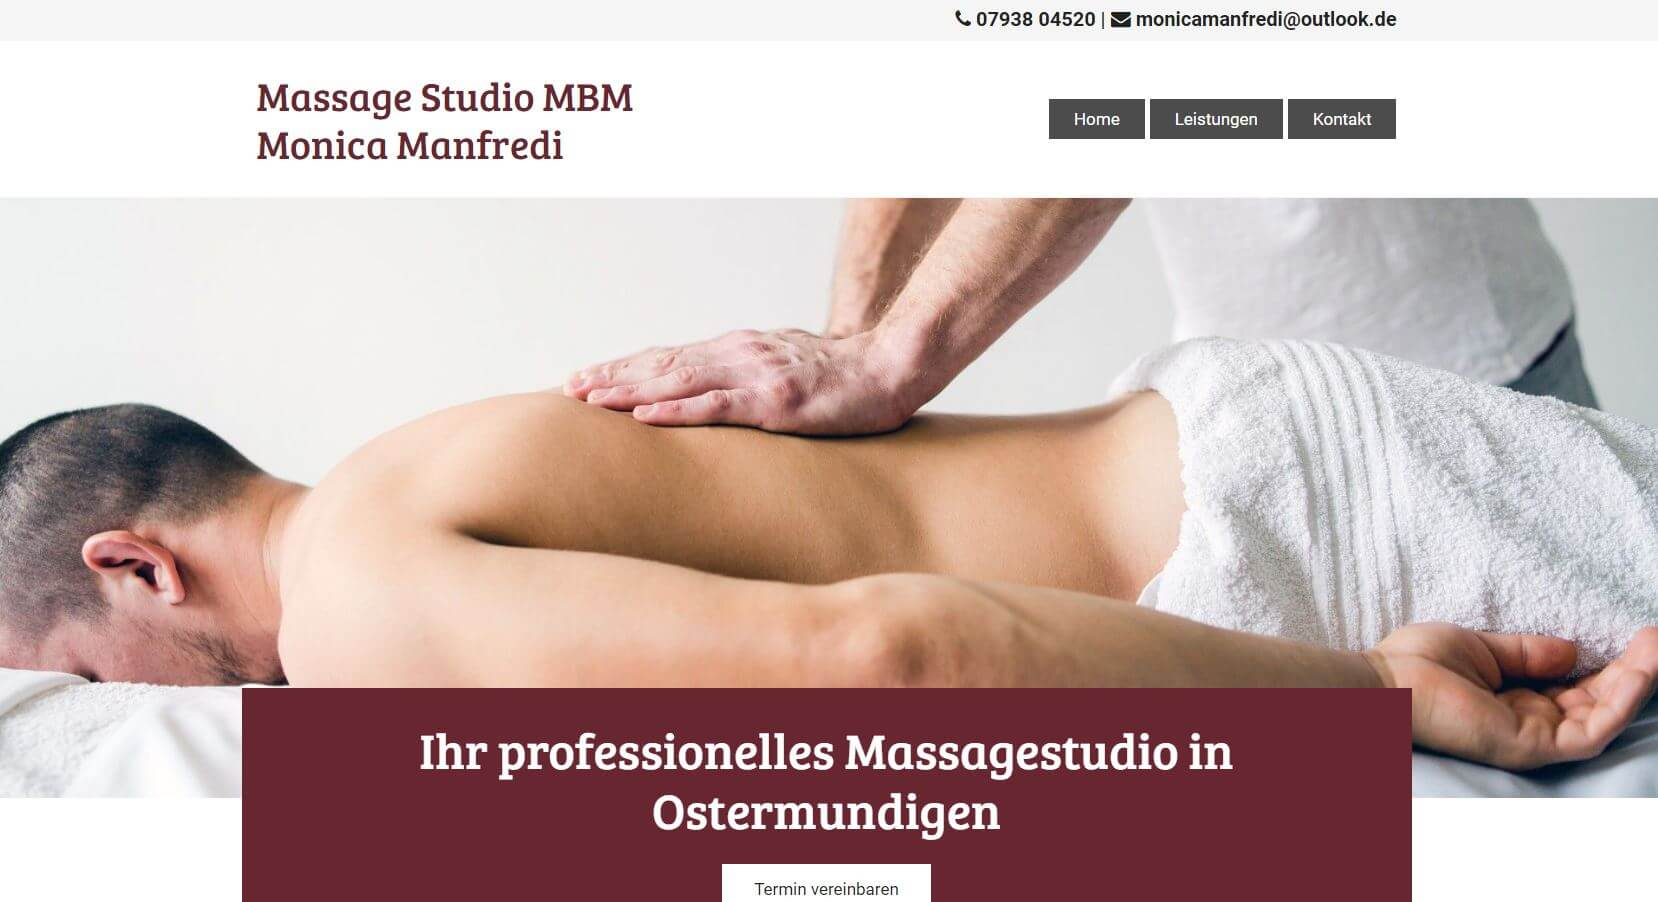 Massagestudio MBM